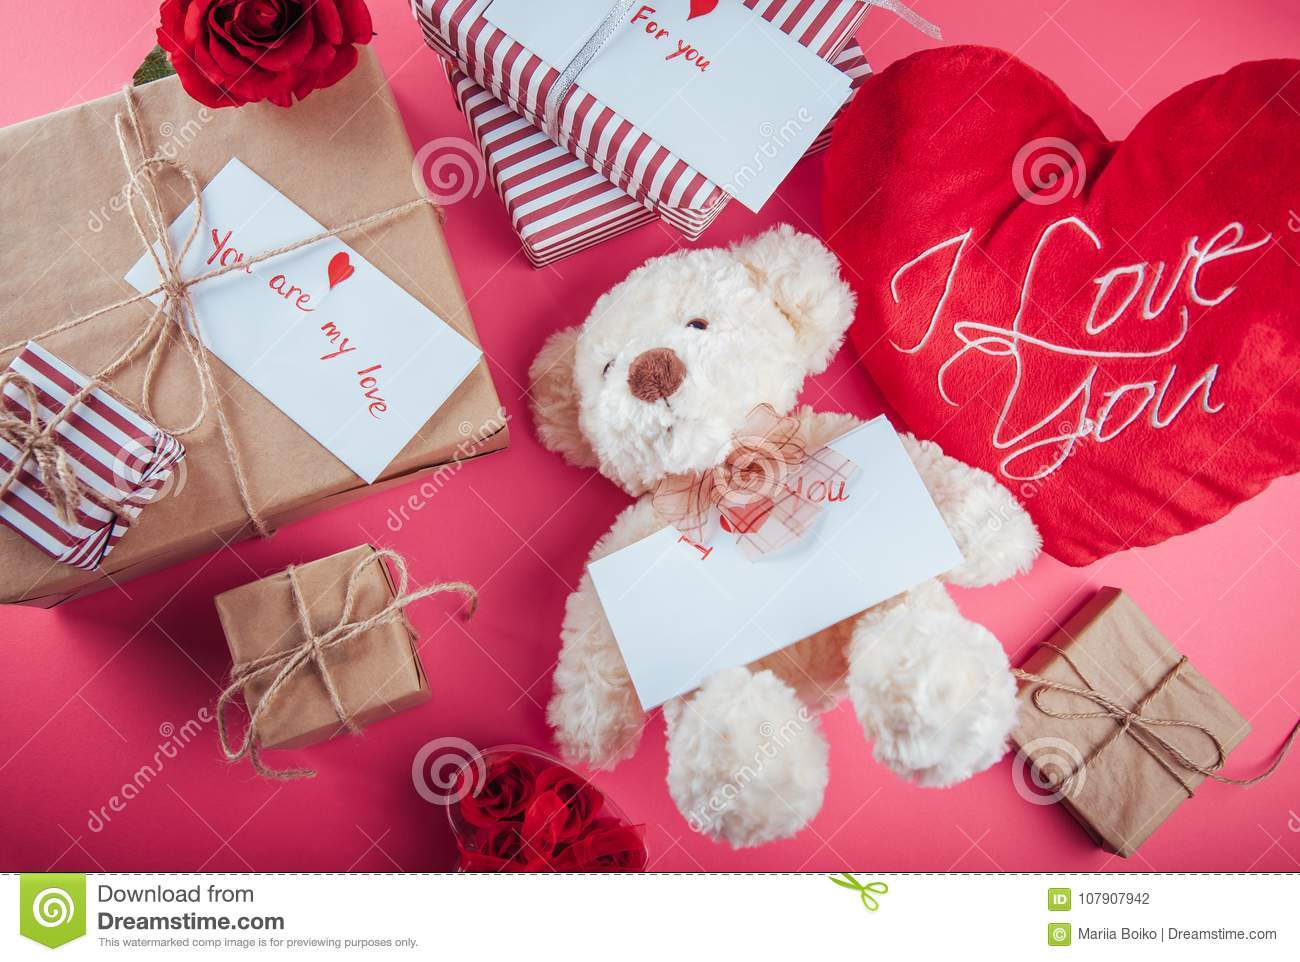 Presents For Valentines Day On Pink Background Stock Photo - Image ...